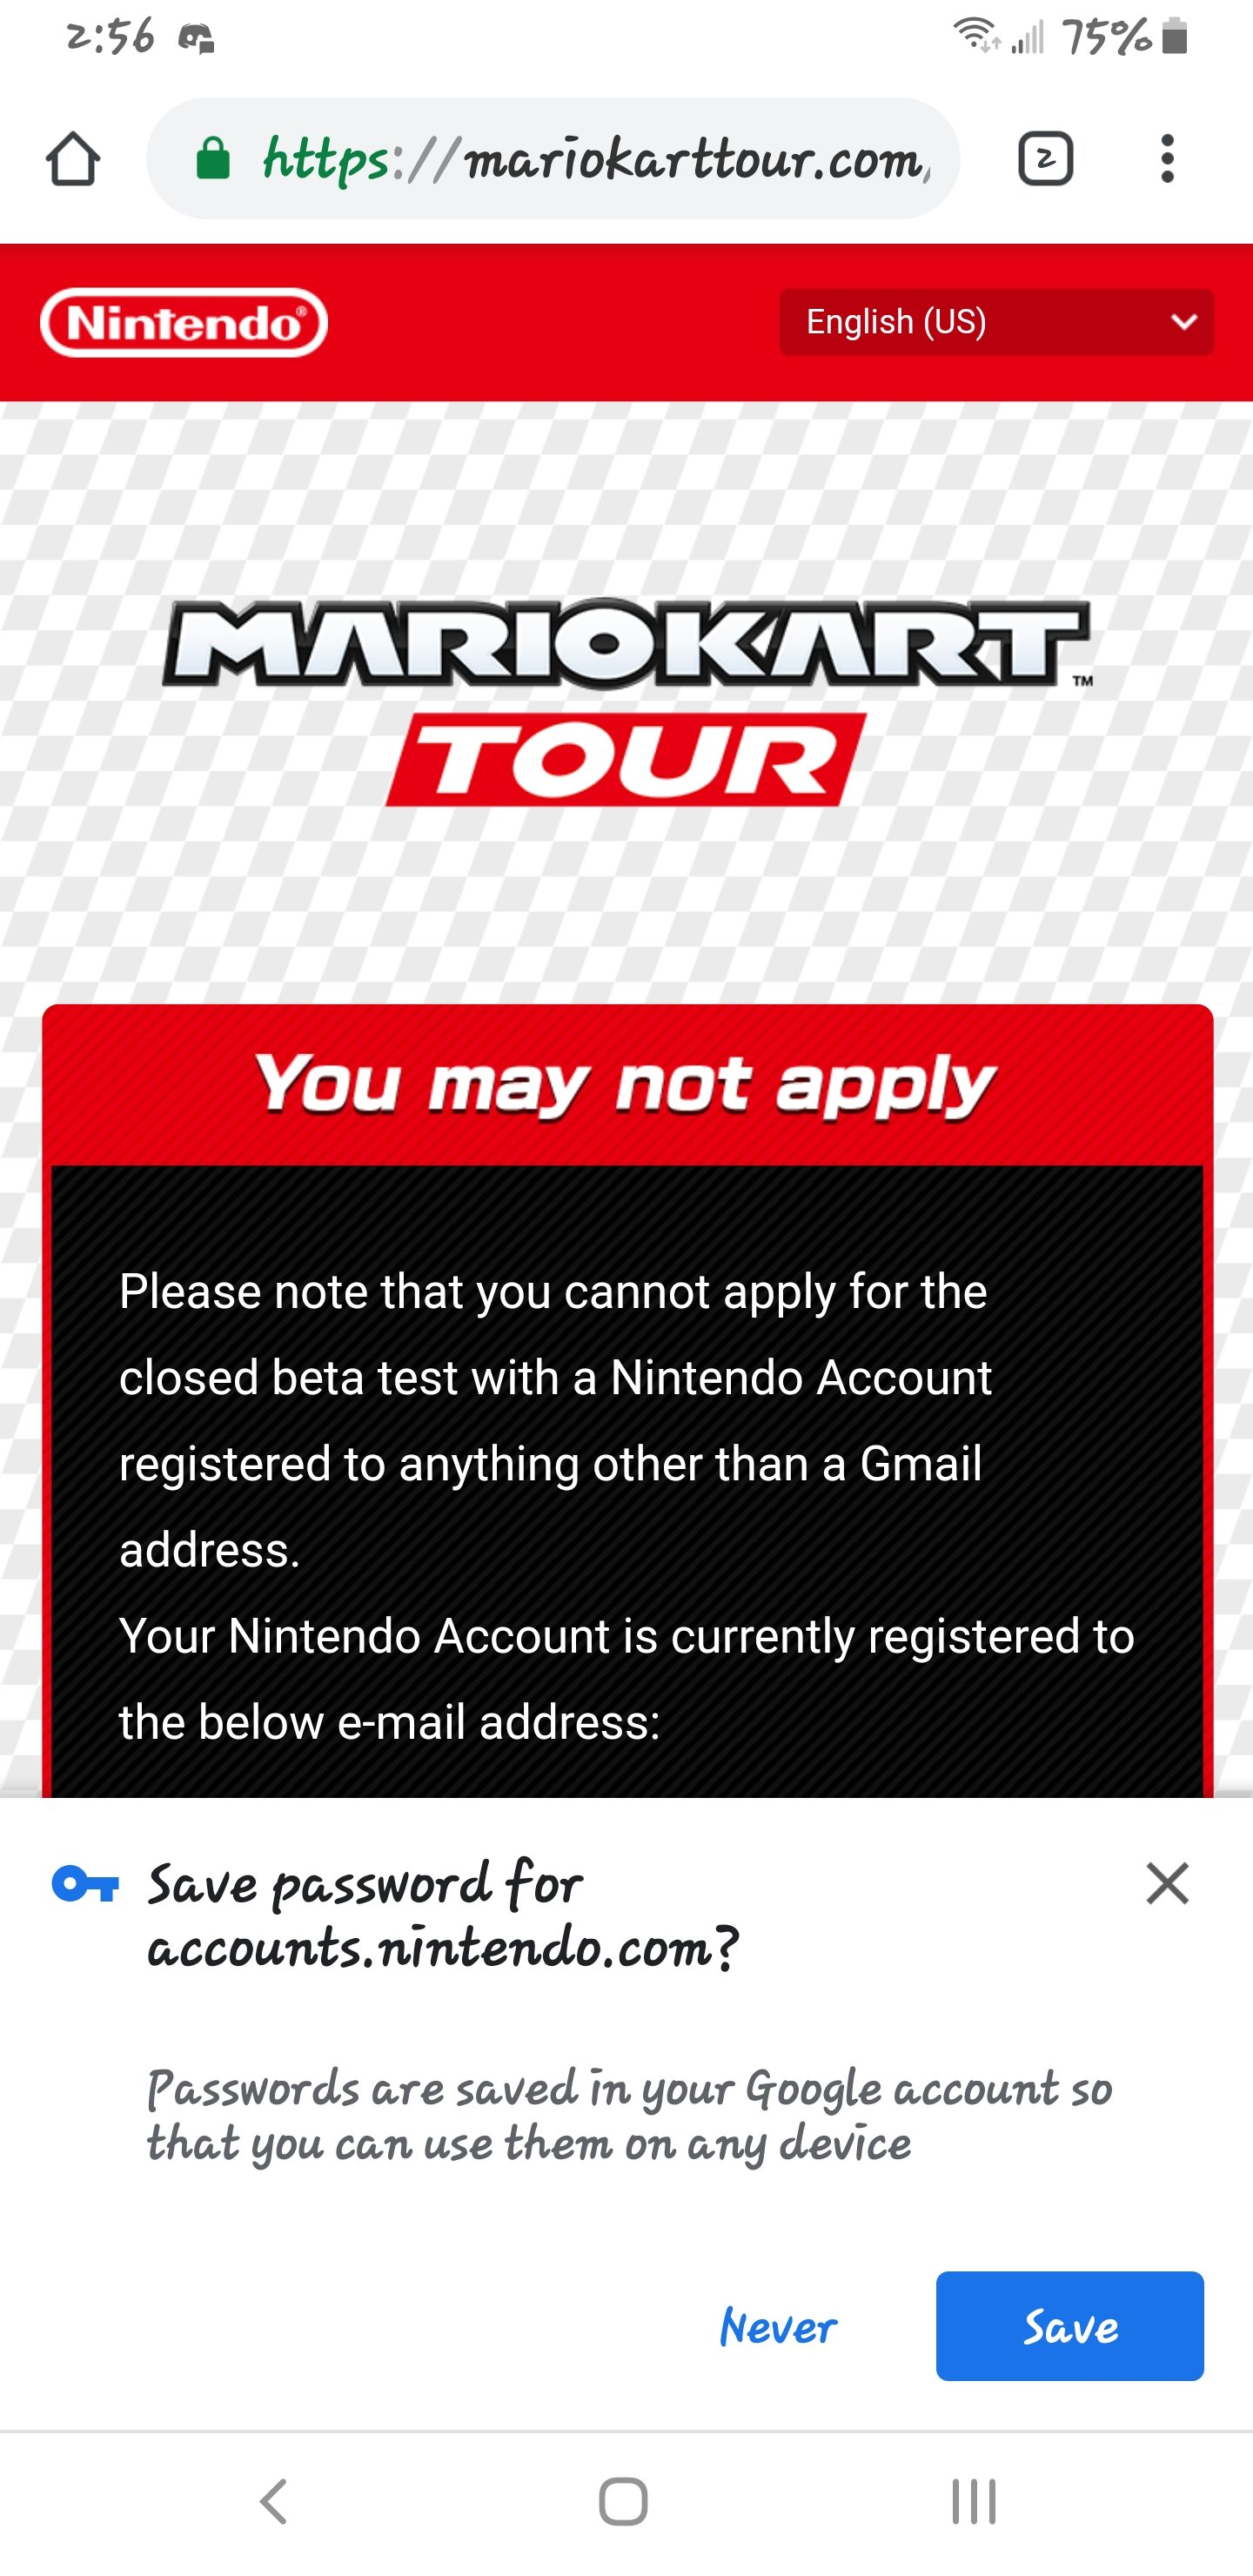 Mario Kart Tour will have a closed beta on Android devices